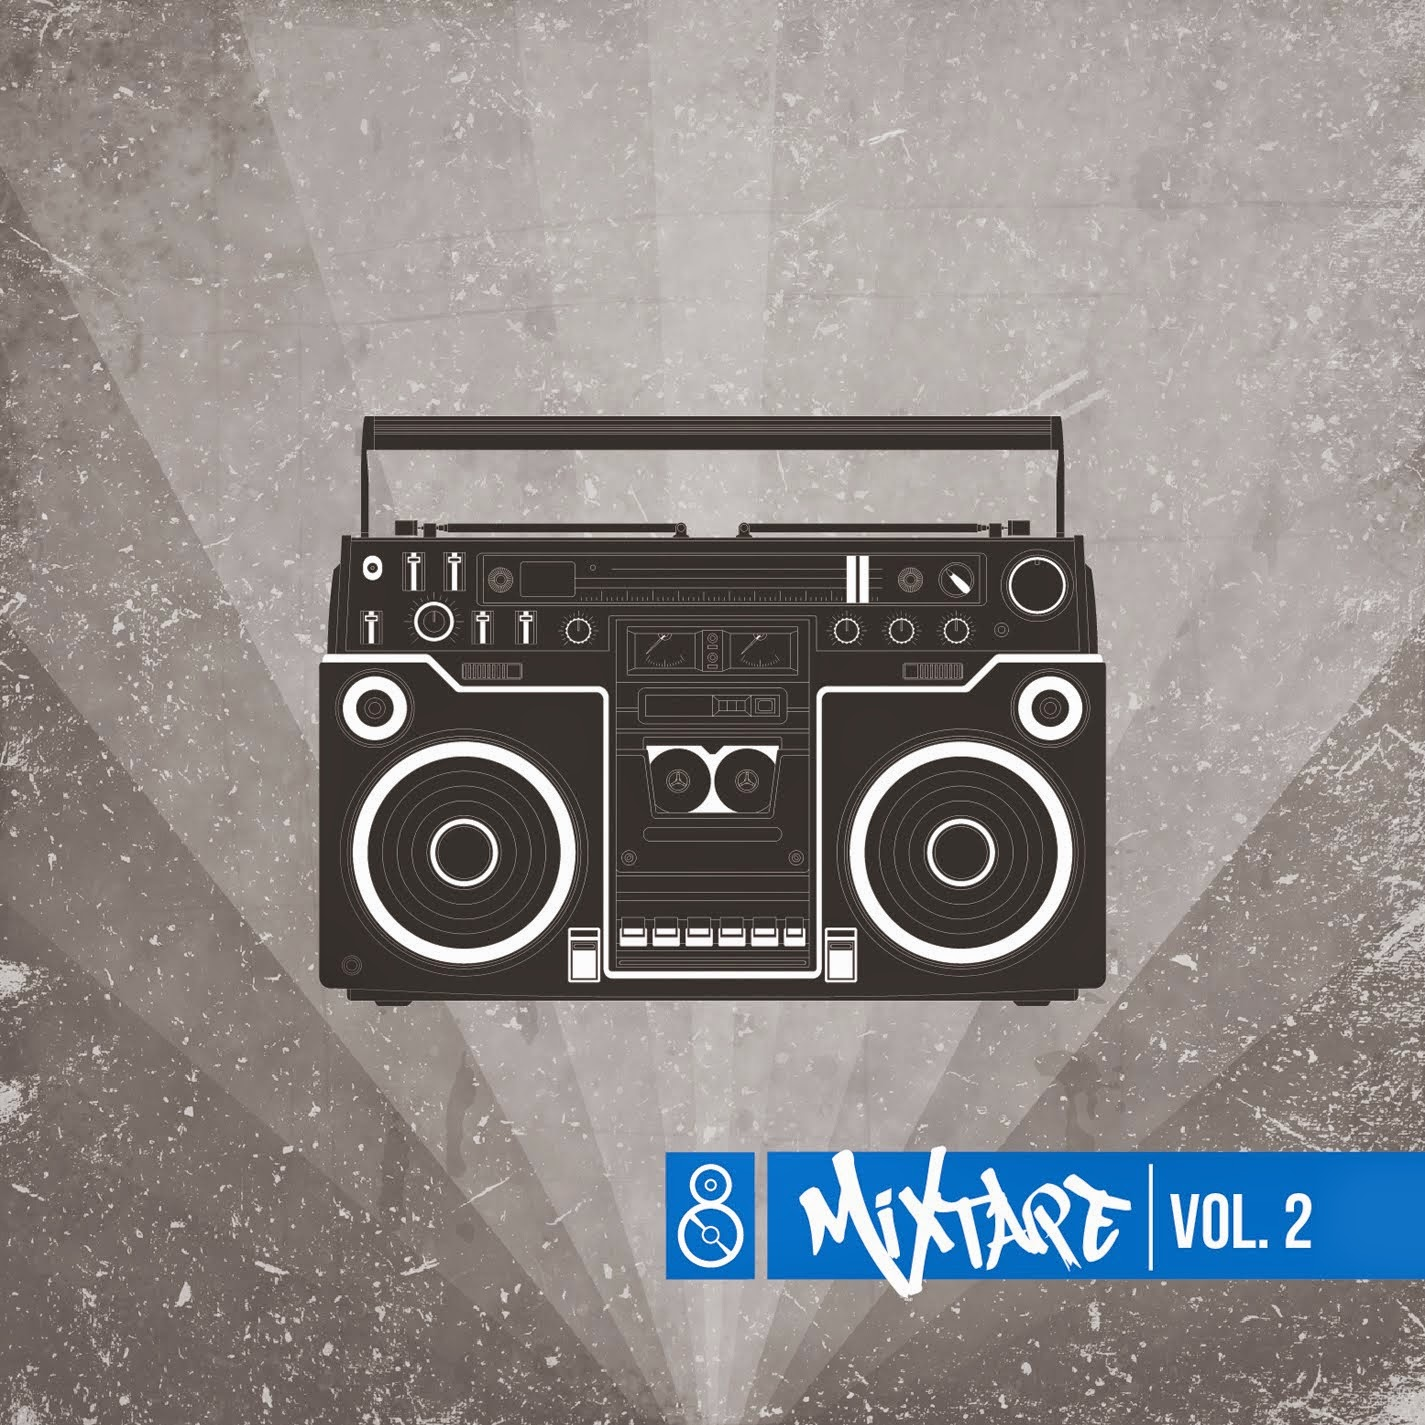 La Voz Del Hiphop Mixtape Vol.2